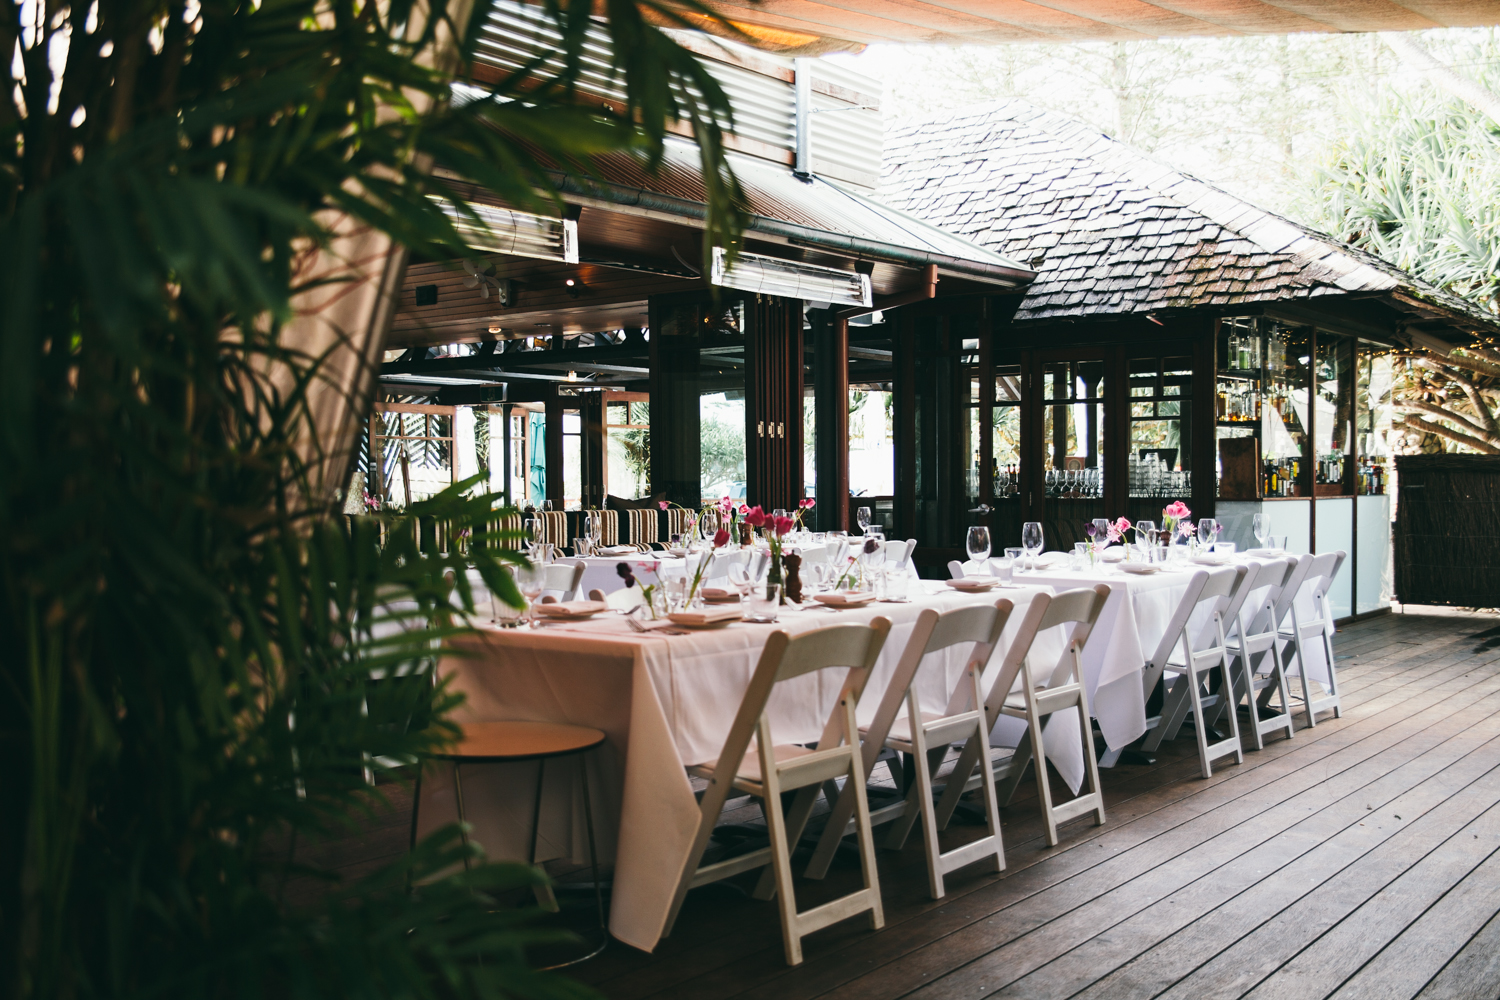 Copy of The Italian Byron Bay Outdoor Dining